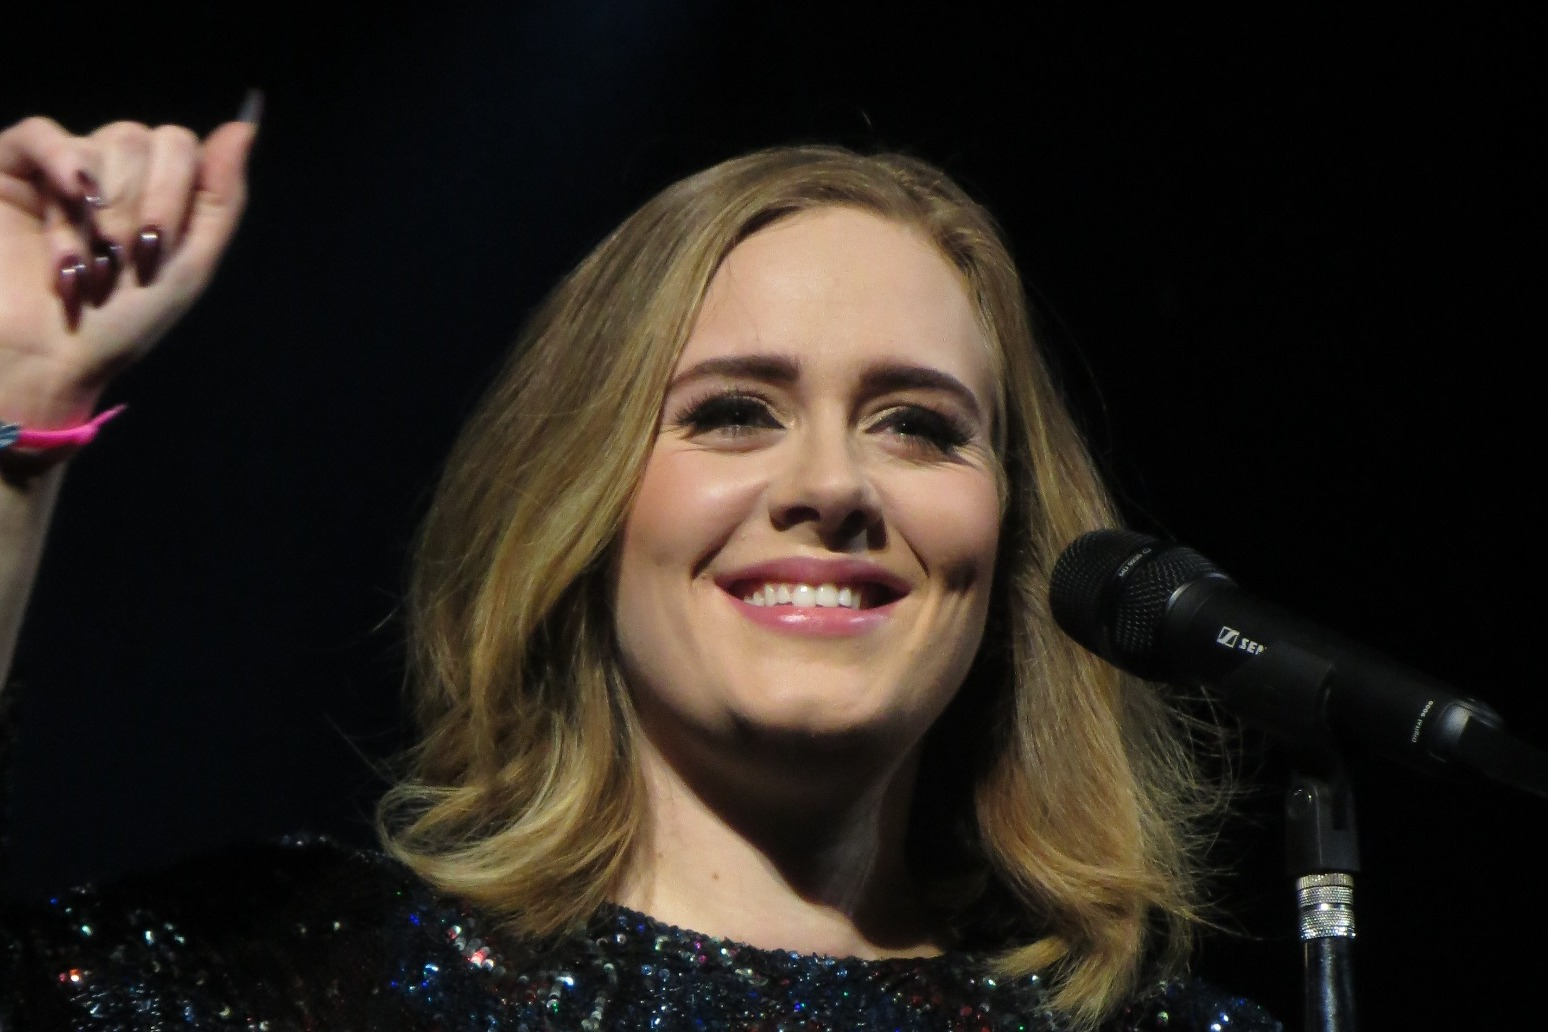 Adele says her weight loss was caused by anxiety